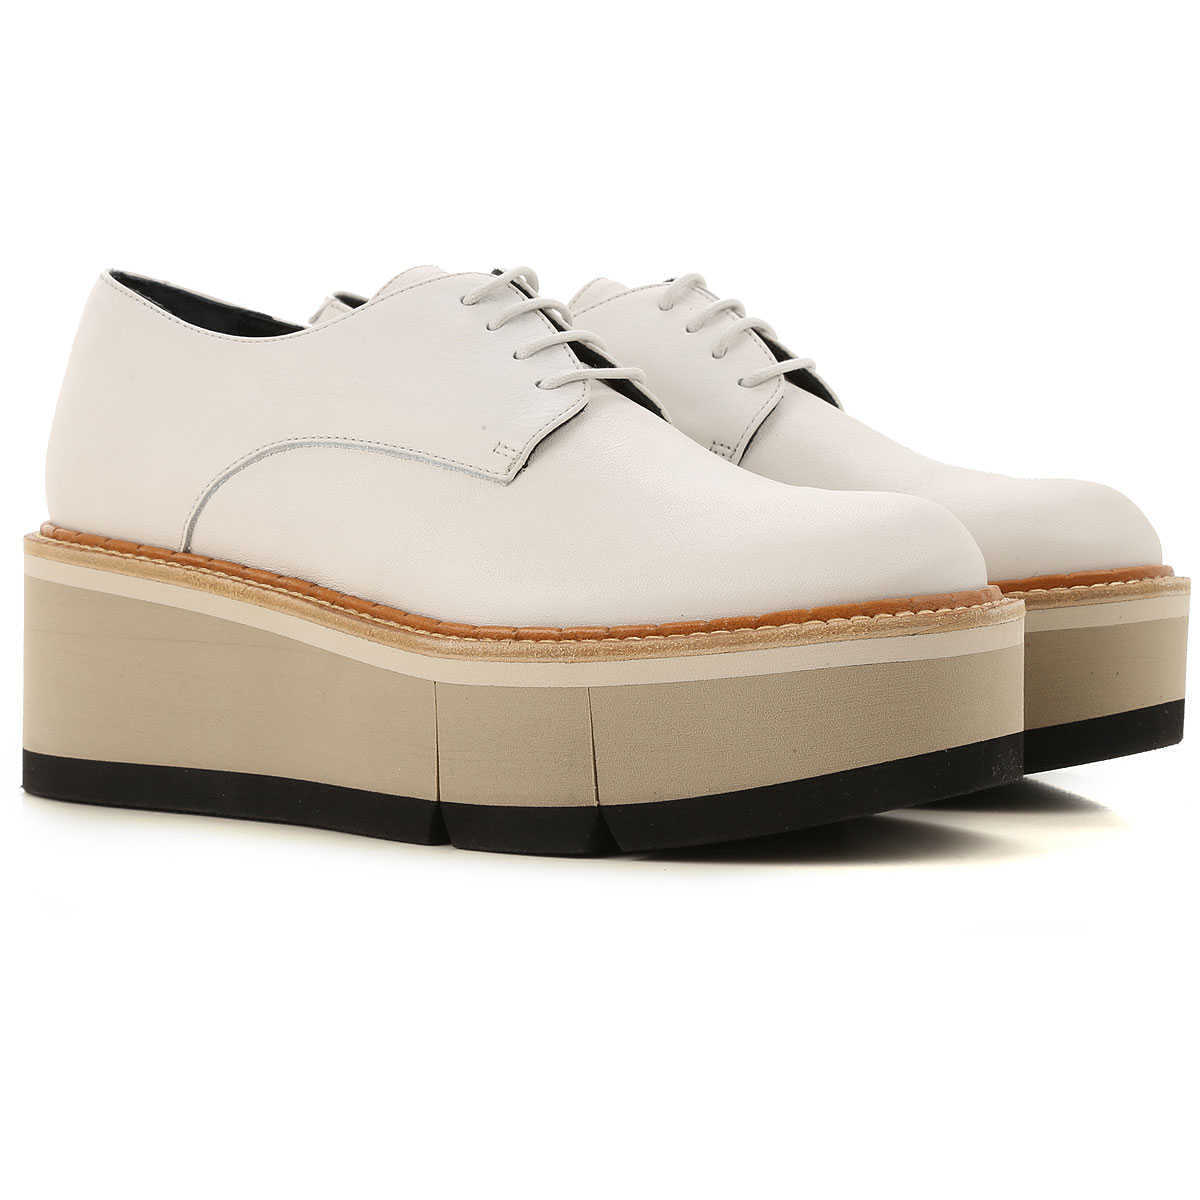 Paloma Barcelo Lace Up Shoes for Men Oxfords Derbies and Brogues Canada - GOOFASH - Womens LEATHER SHOES